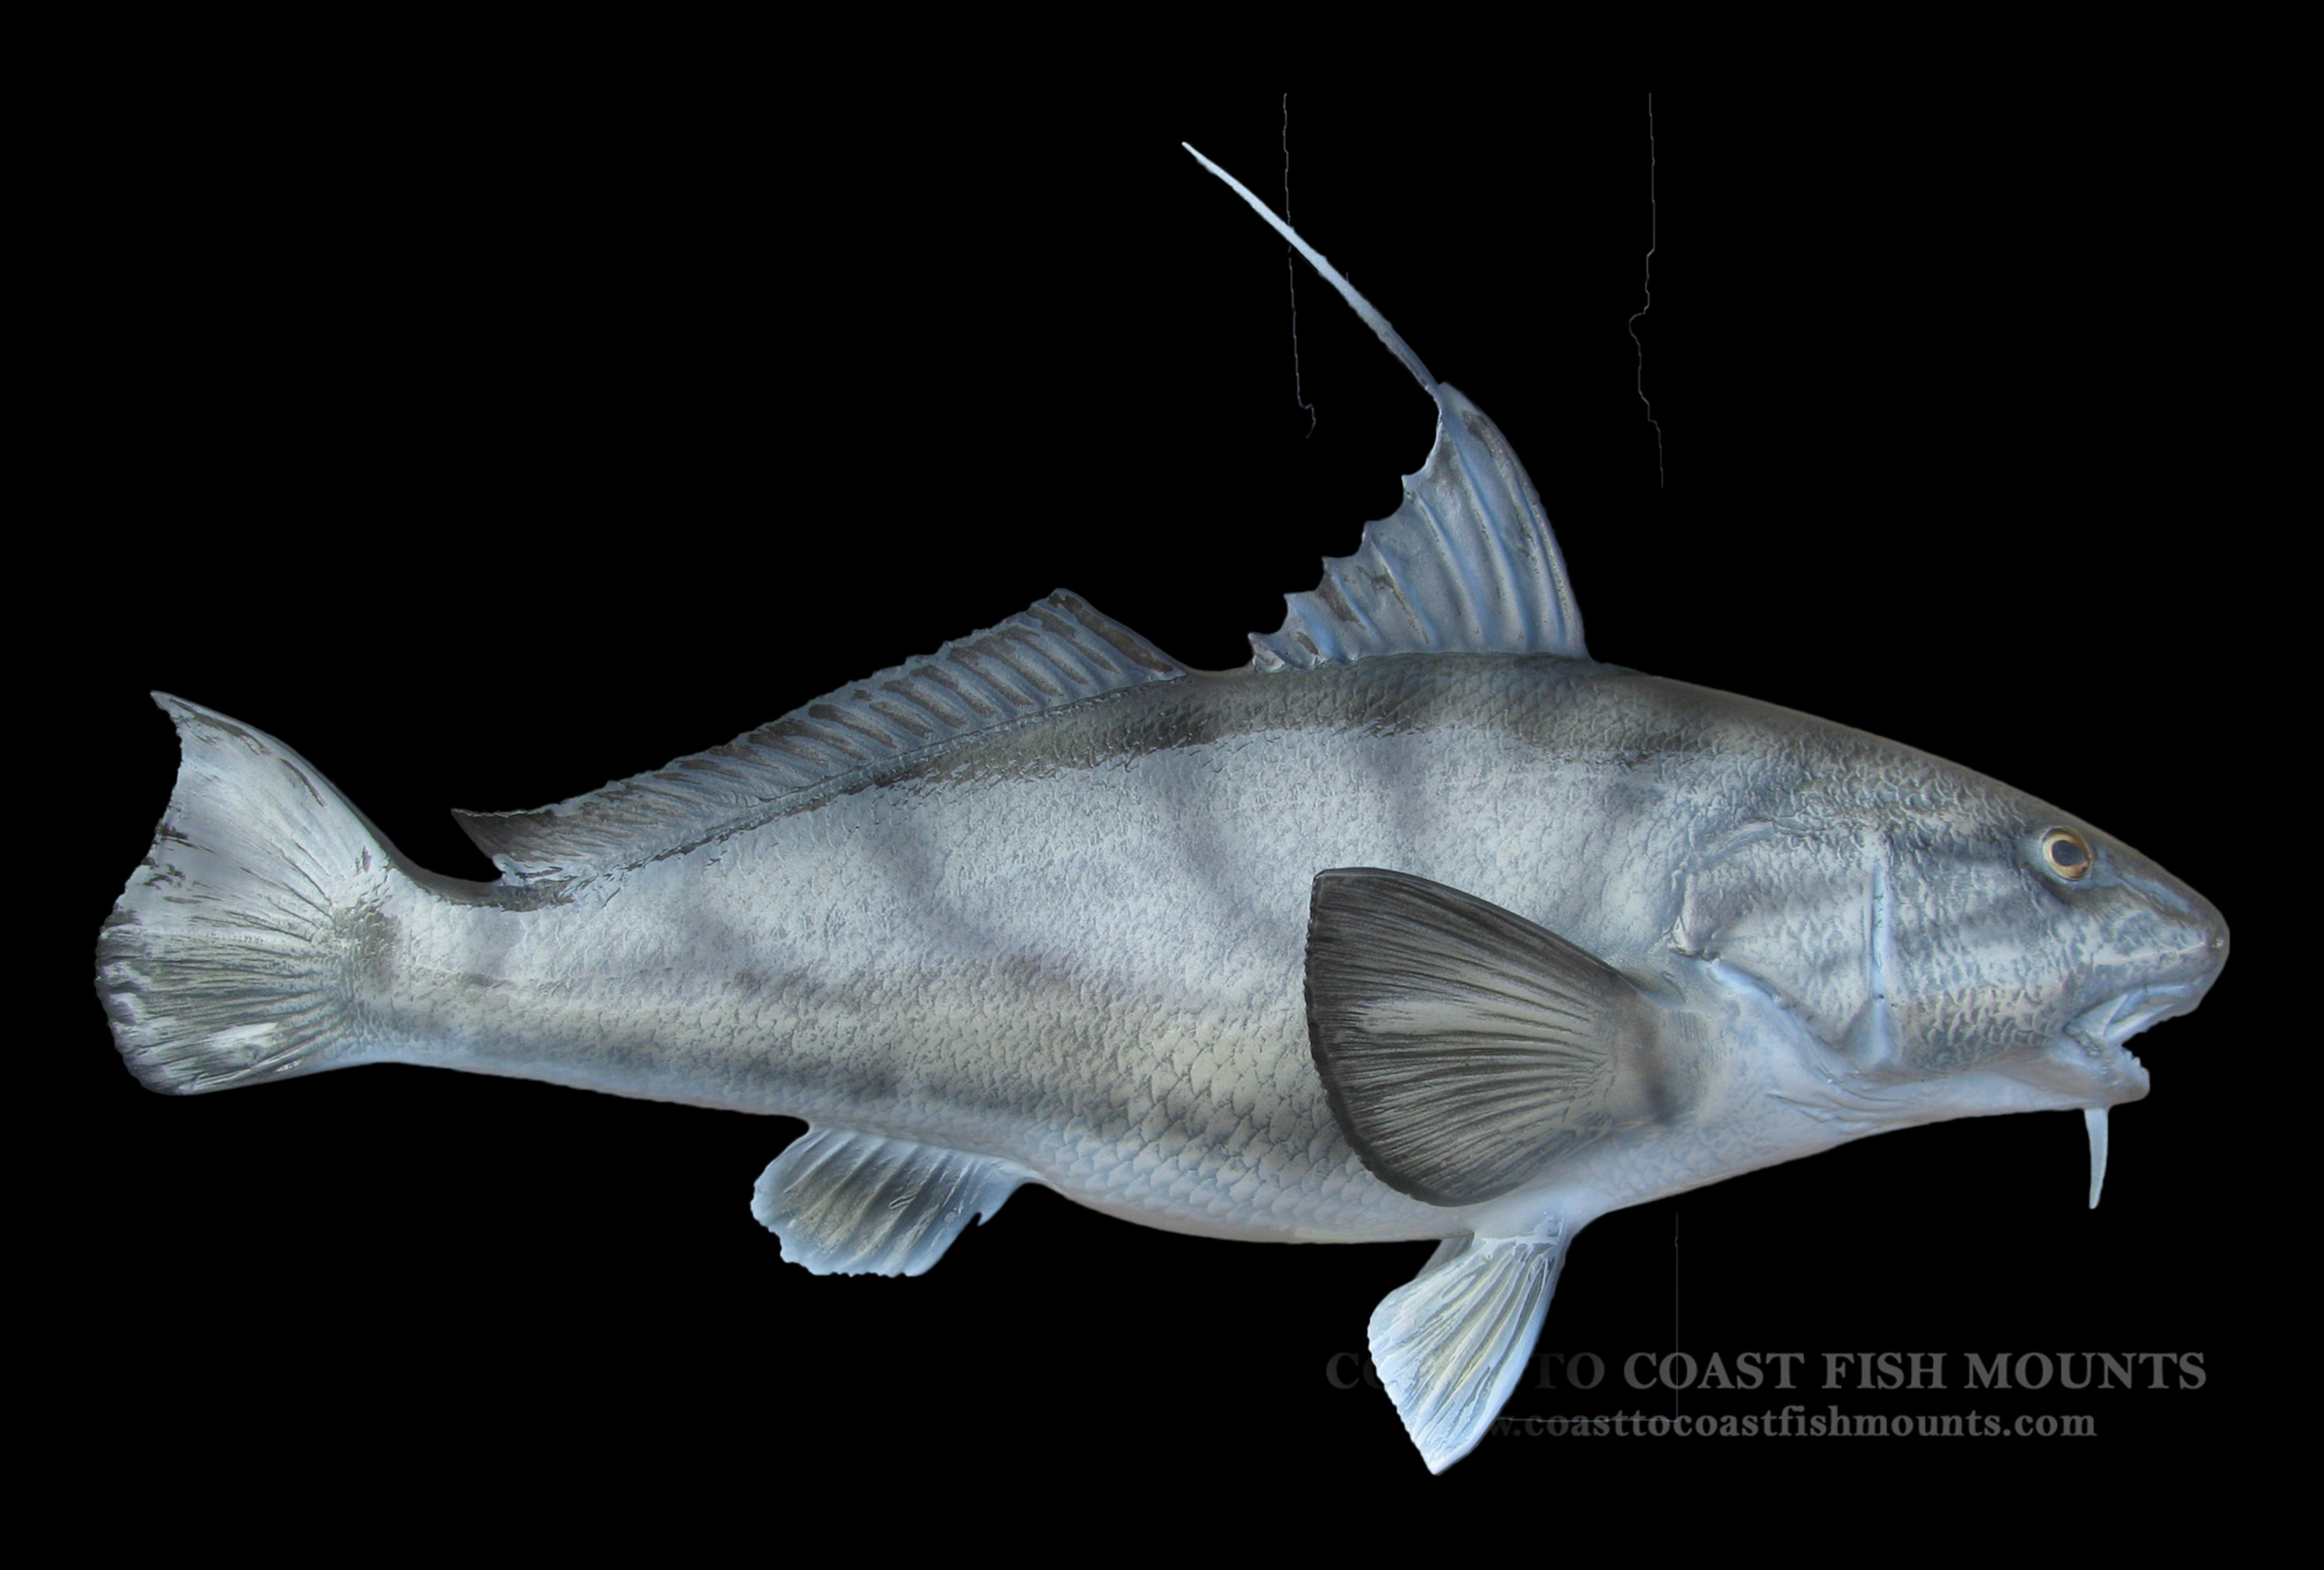 Northern kingfish fish mount and fish replicas coast to for Replica fish mounts